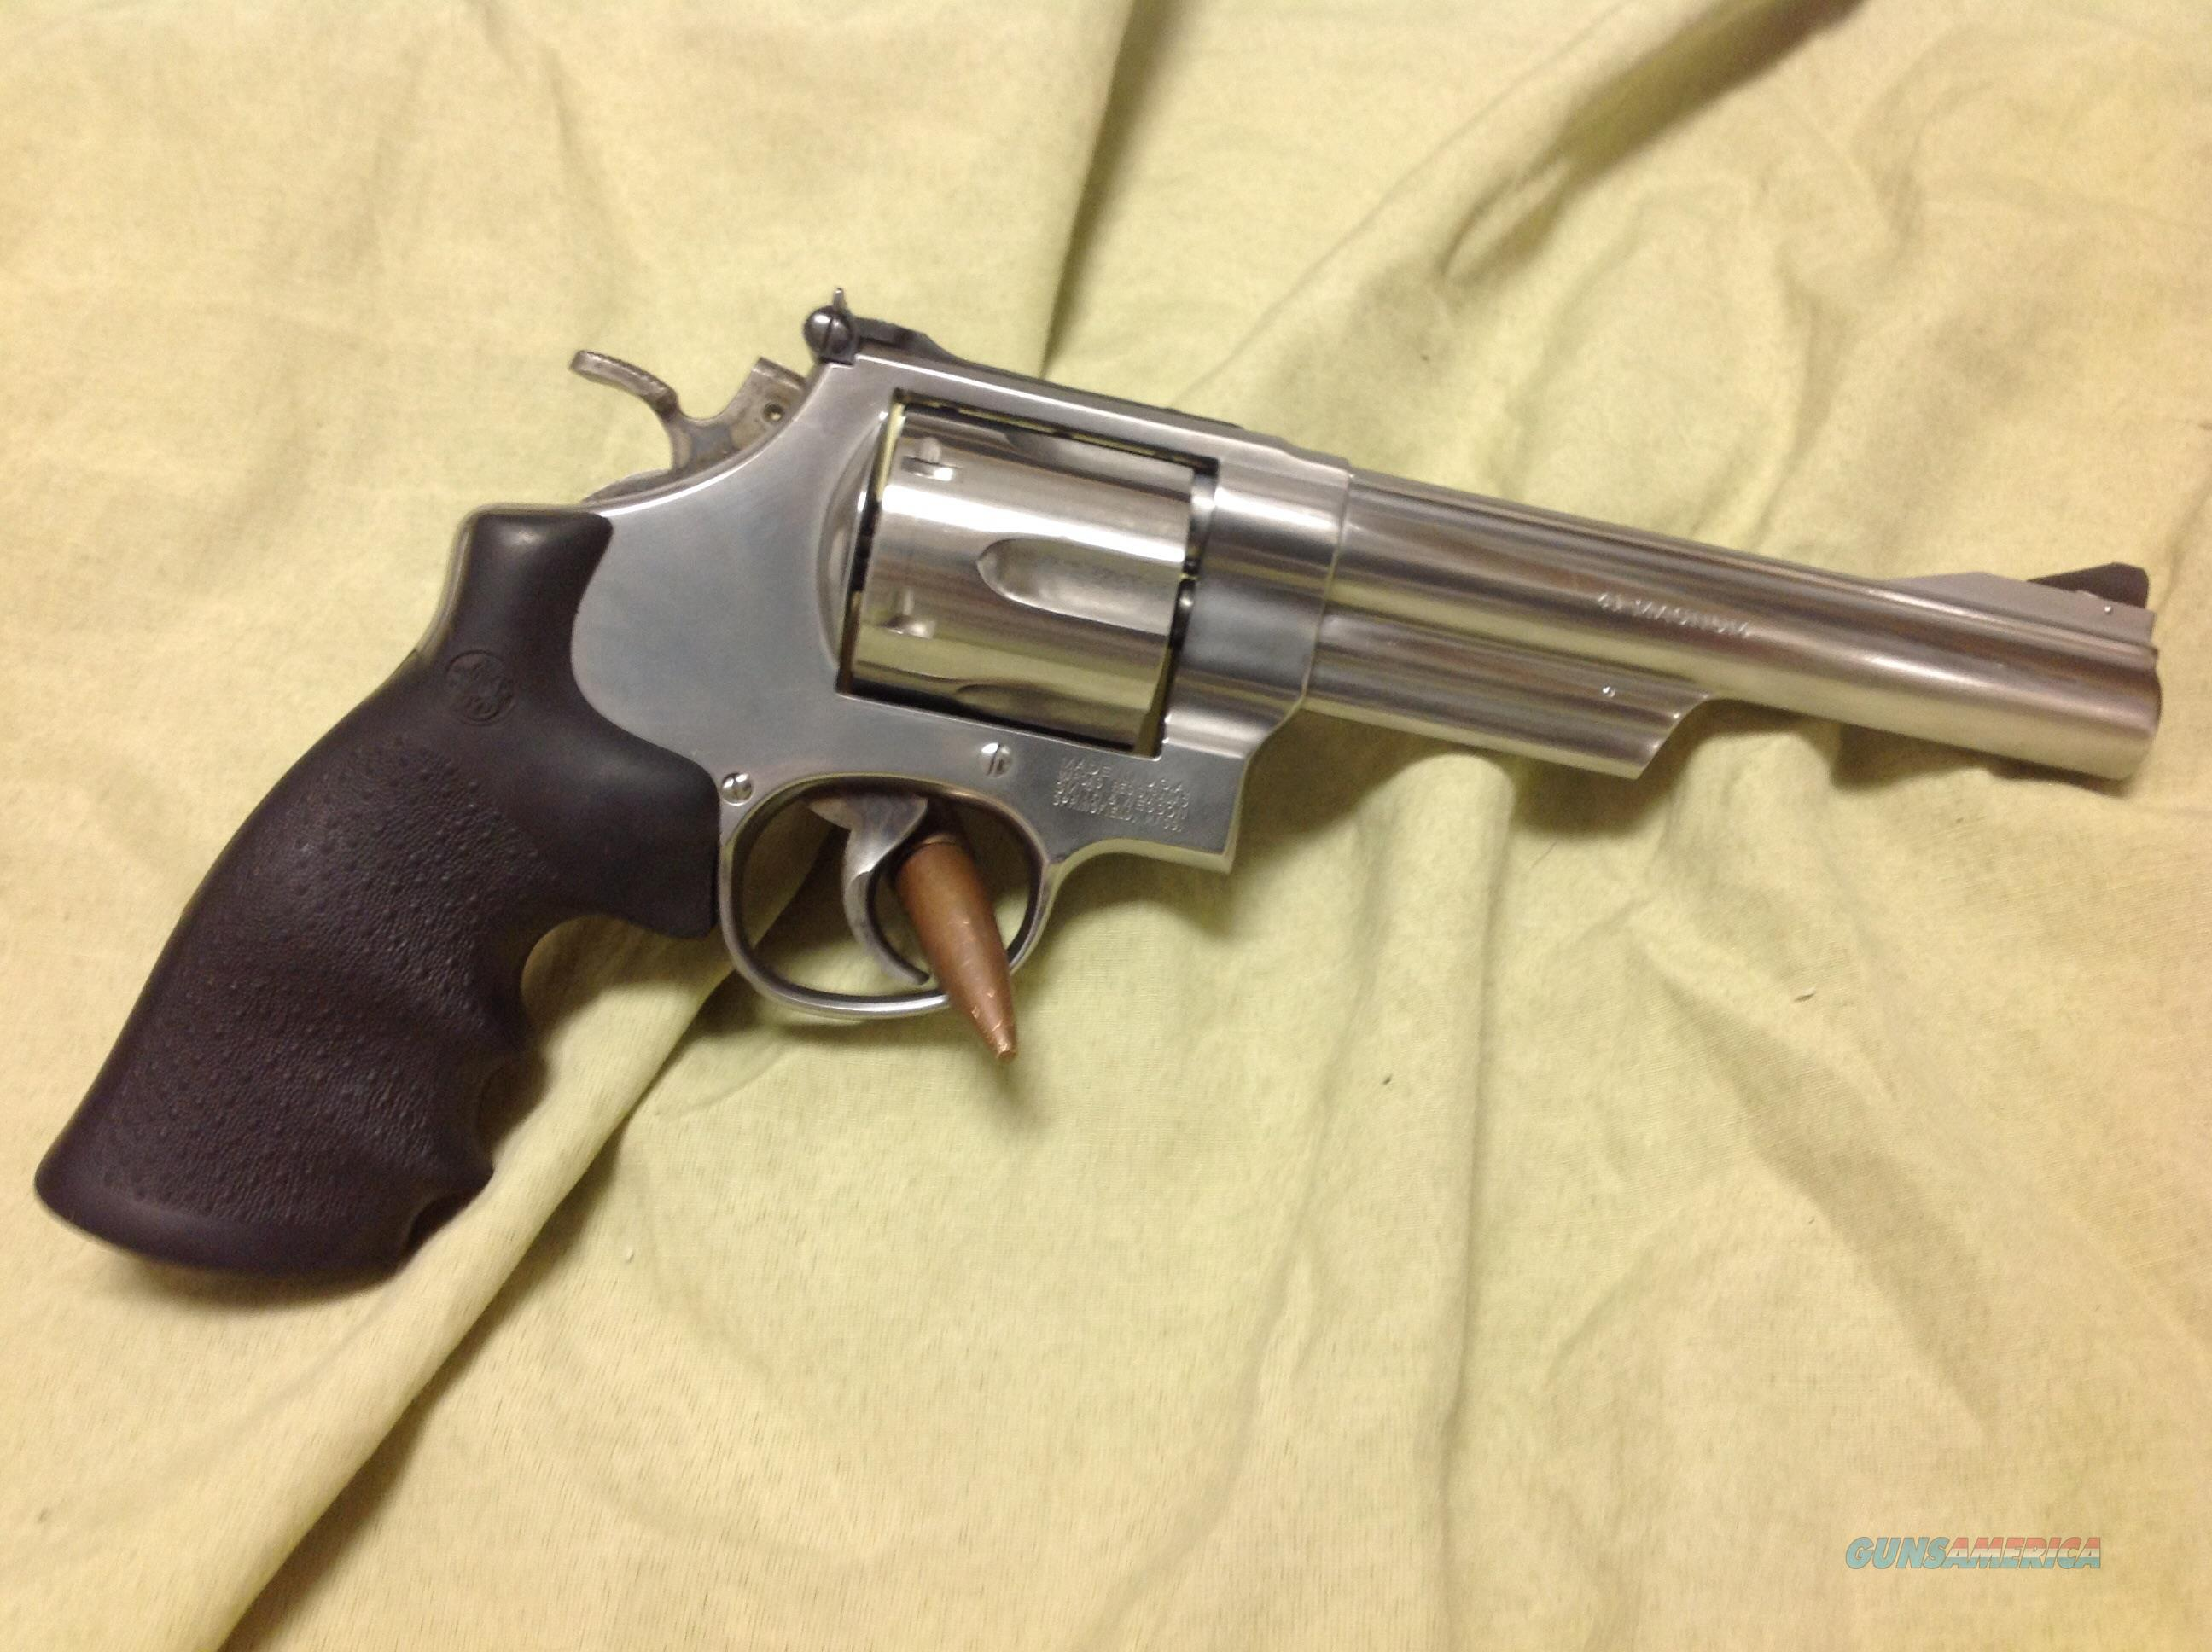 Smith & Wesson model 657-3 41 magnum stainless  Guns > Pistols > Smith & Wesson Revolvers > Full Frame Revolver